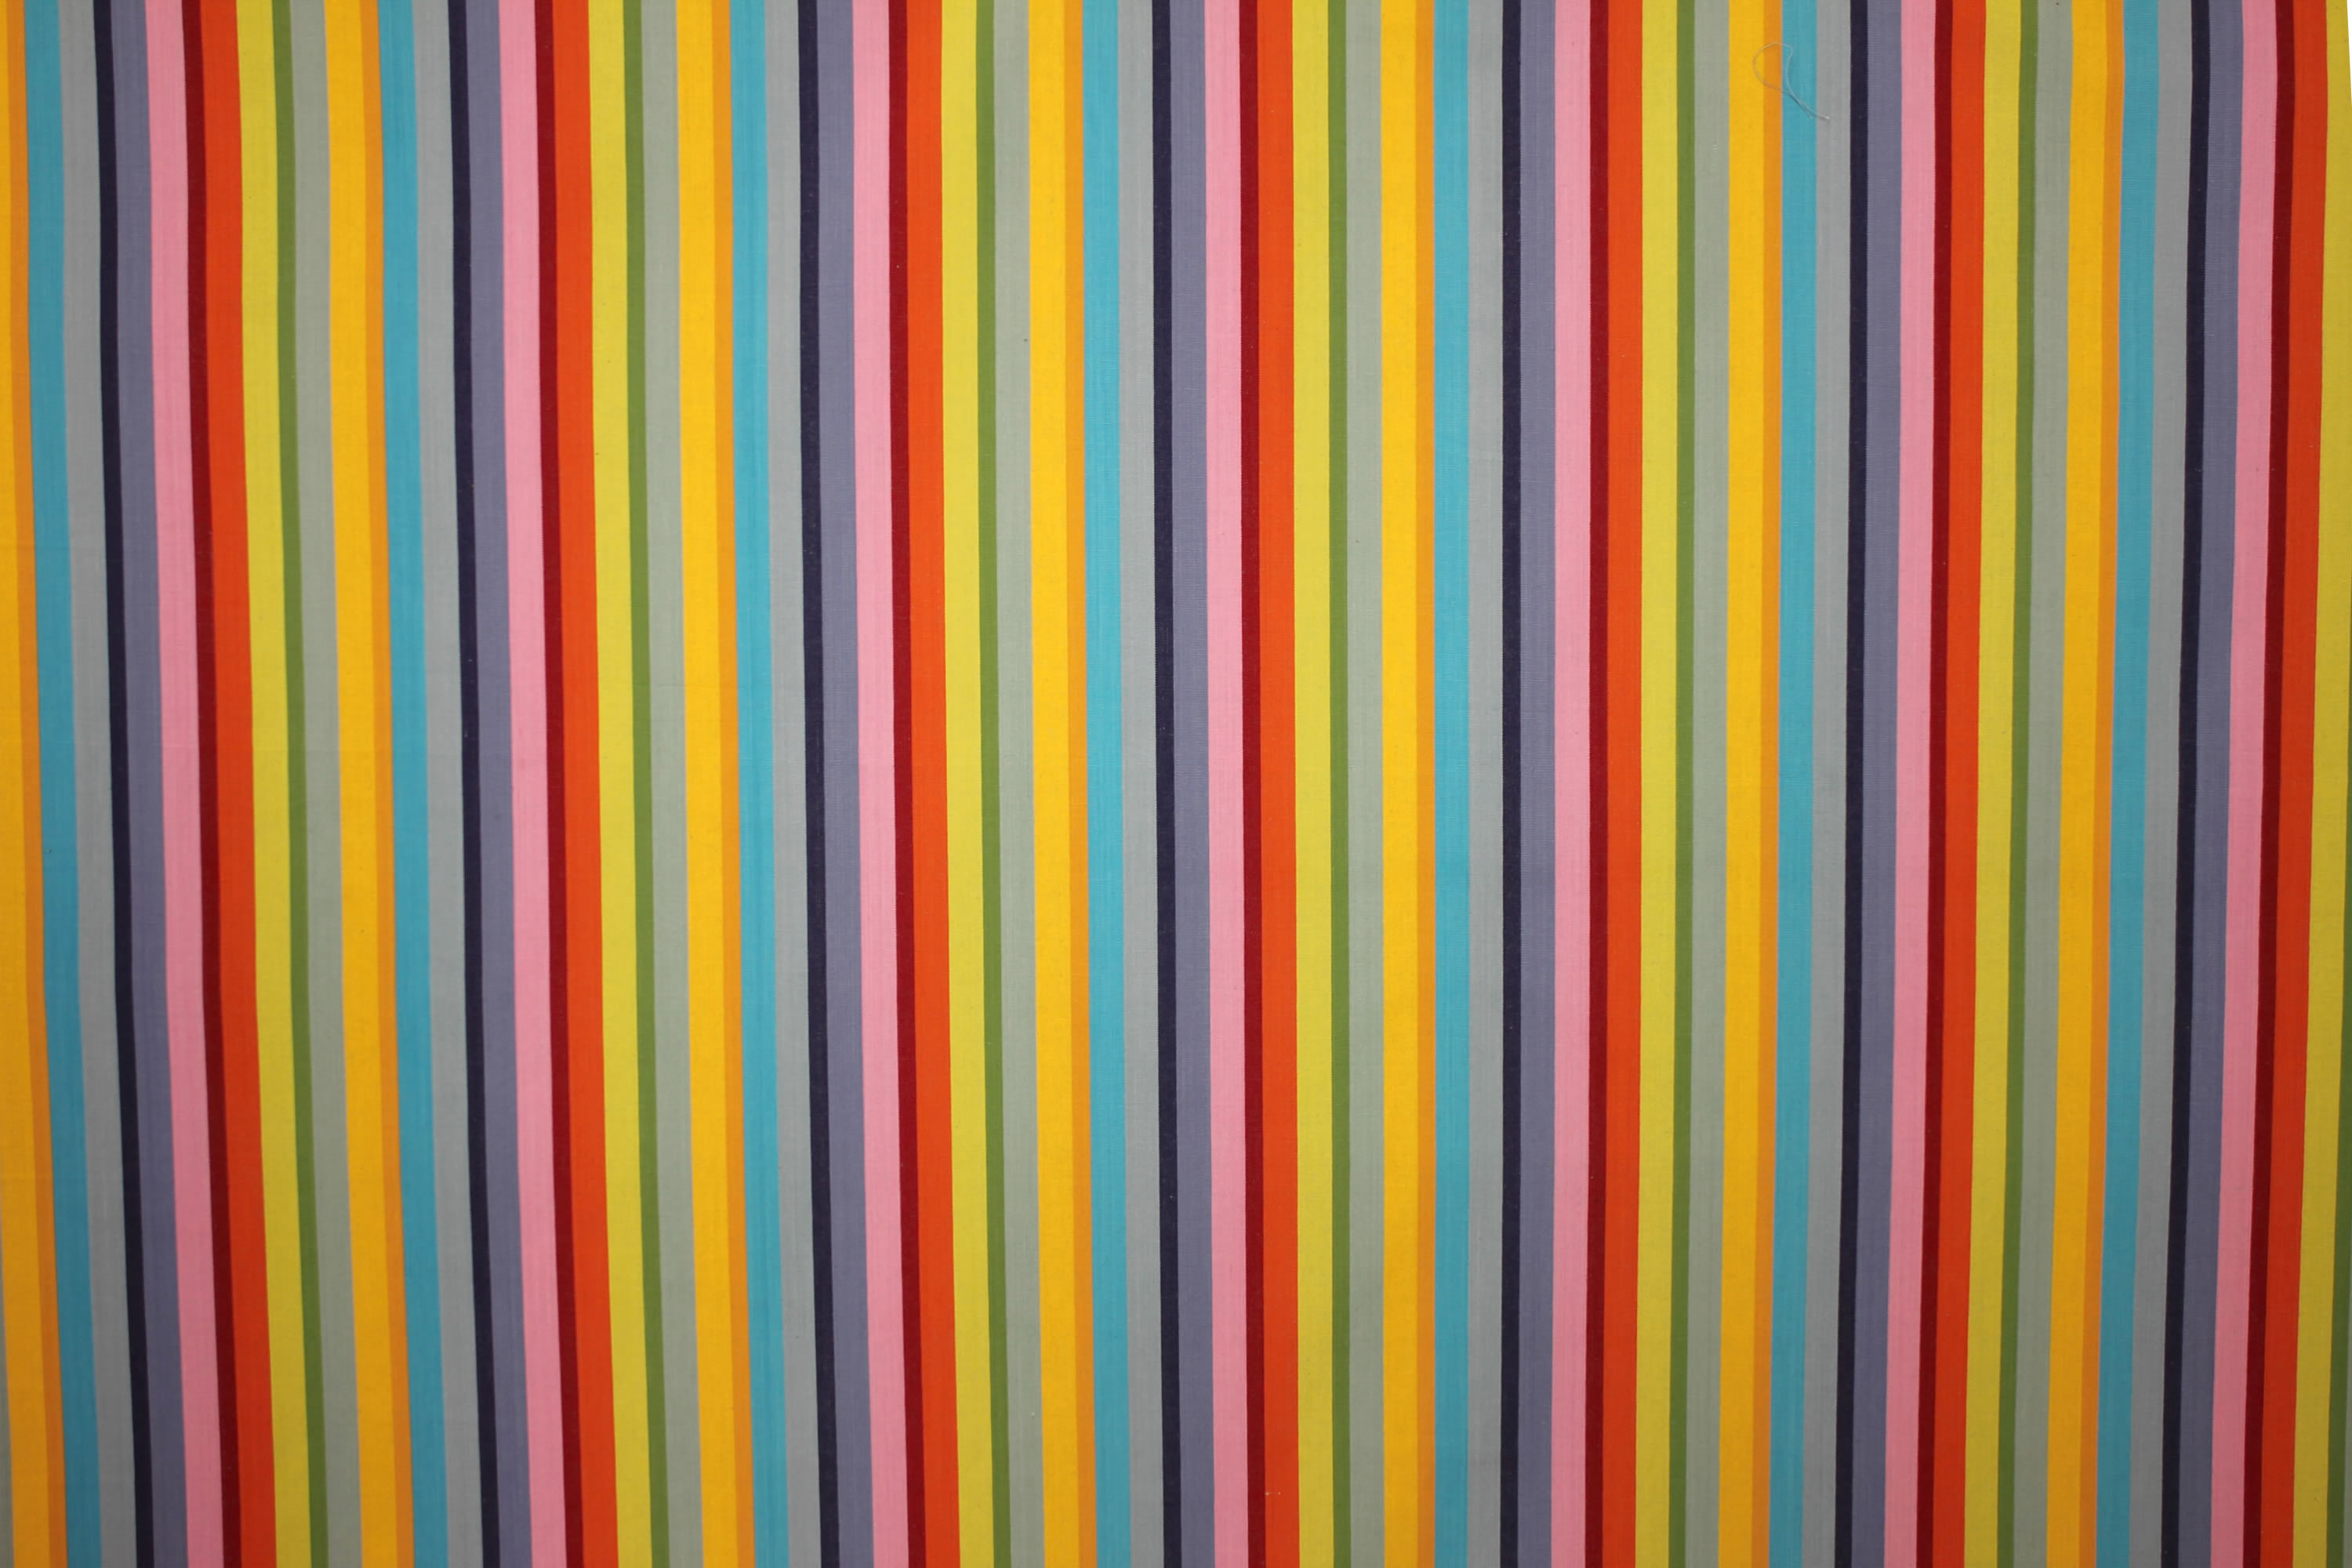 Tango Rainbow Striped Fabric